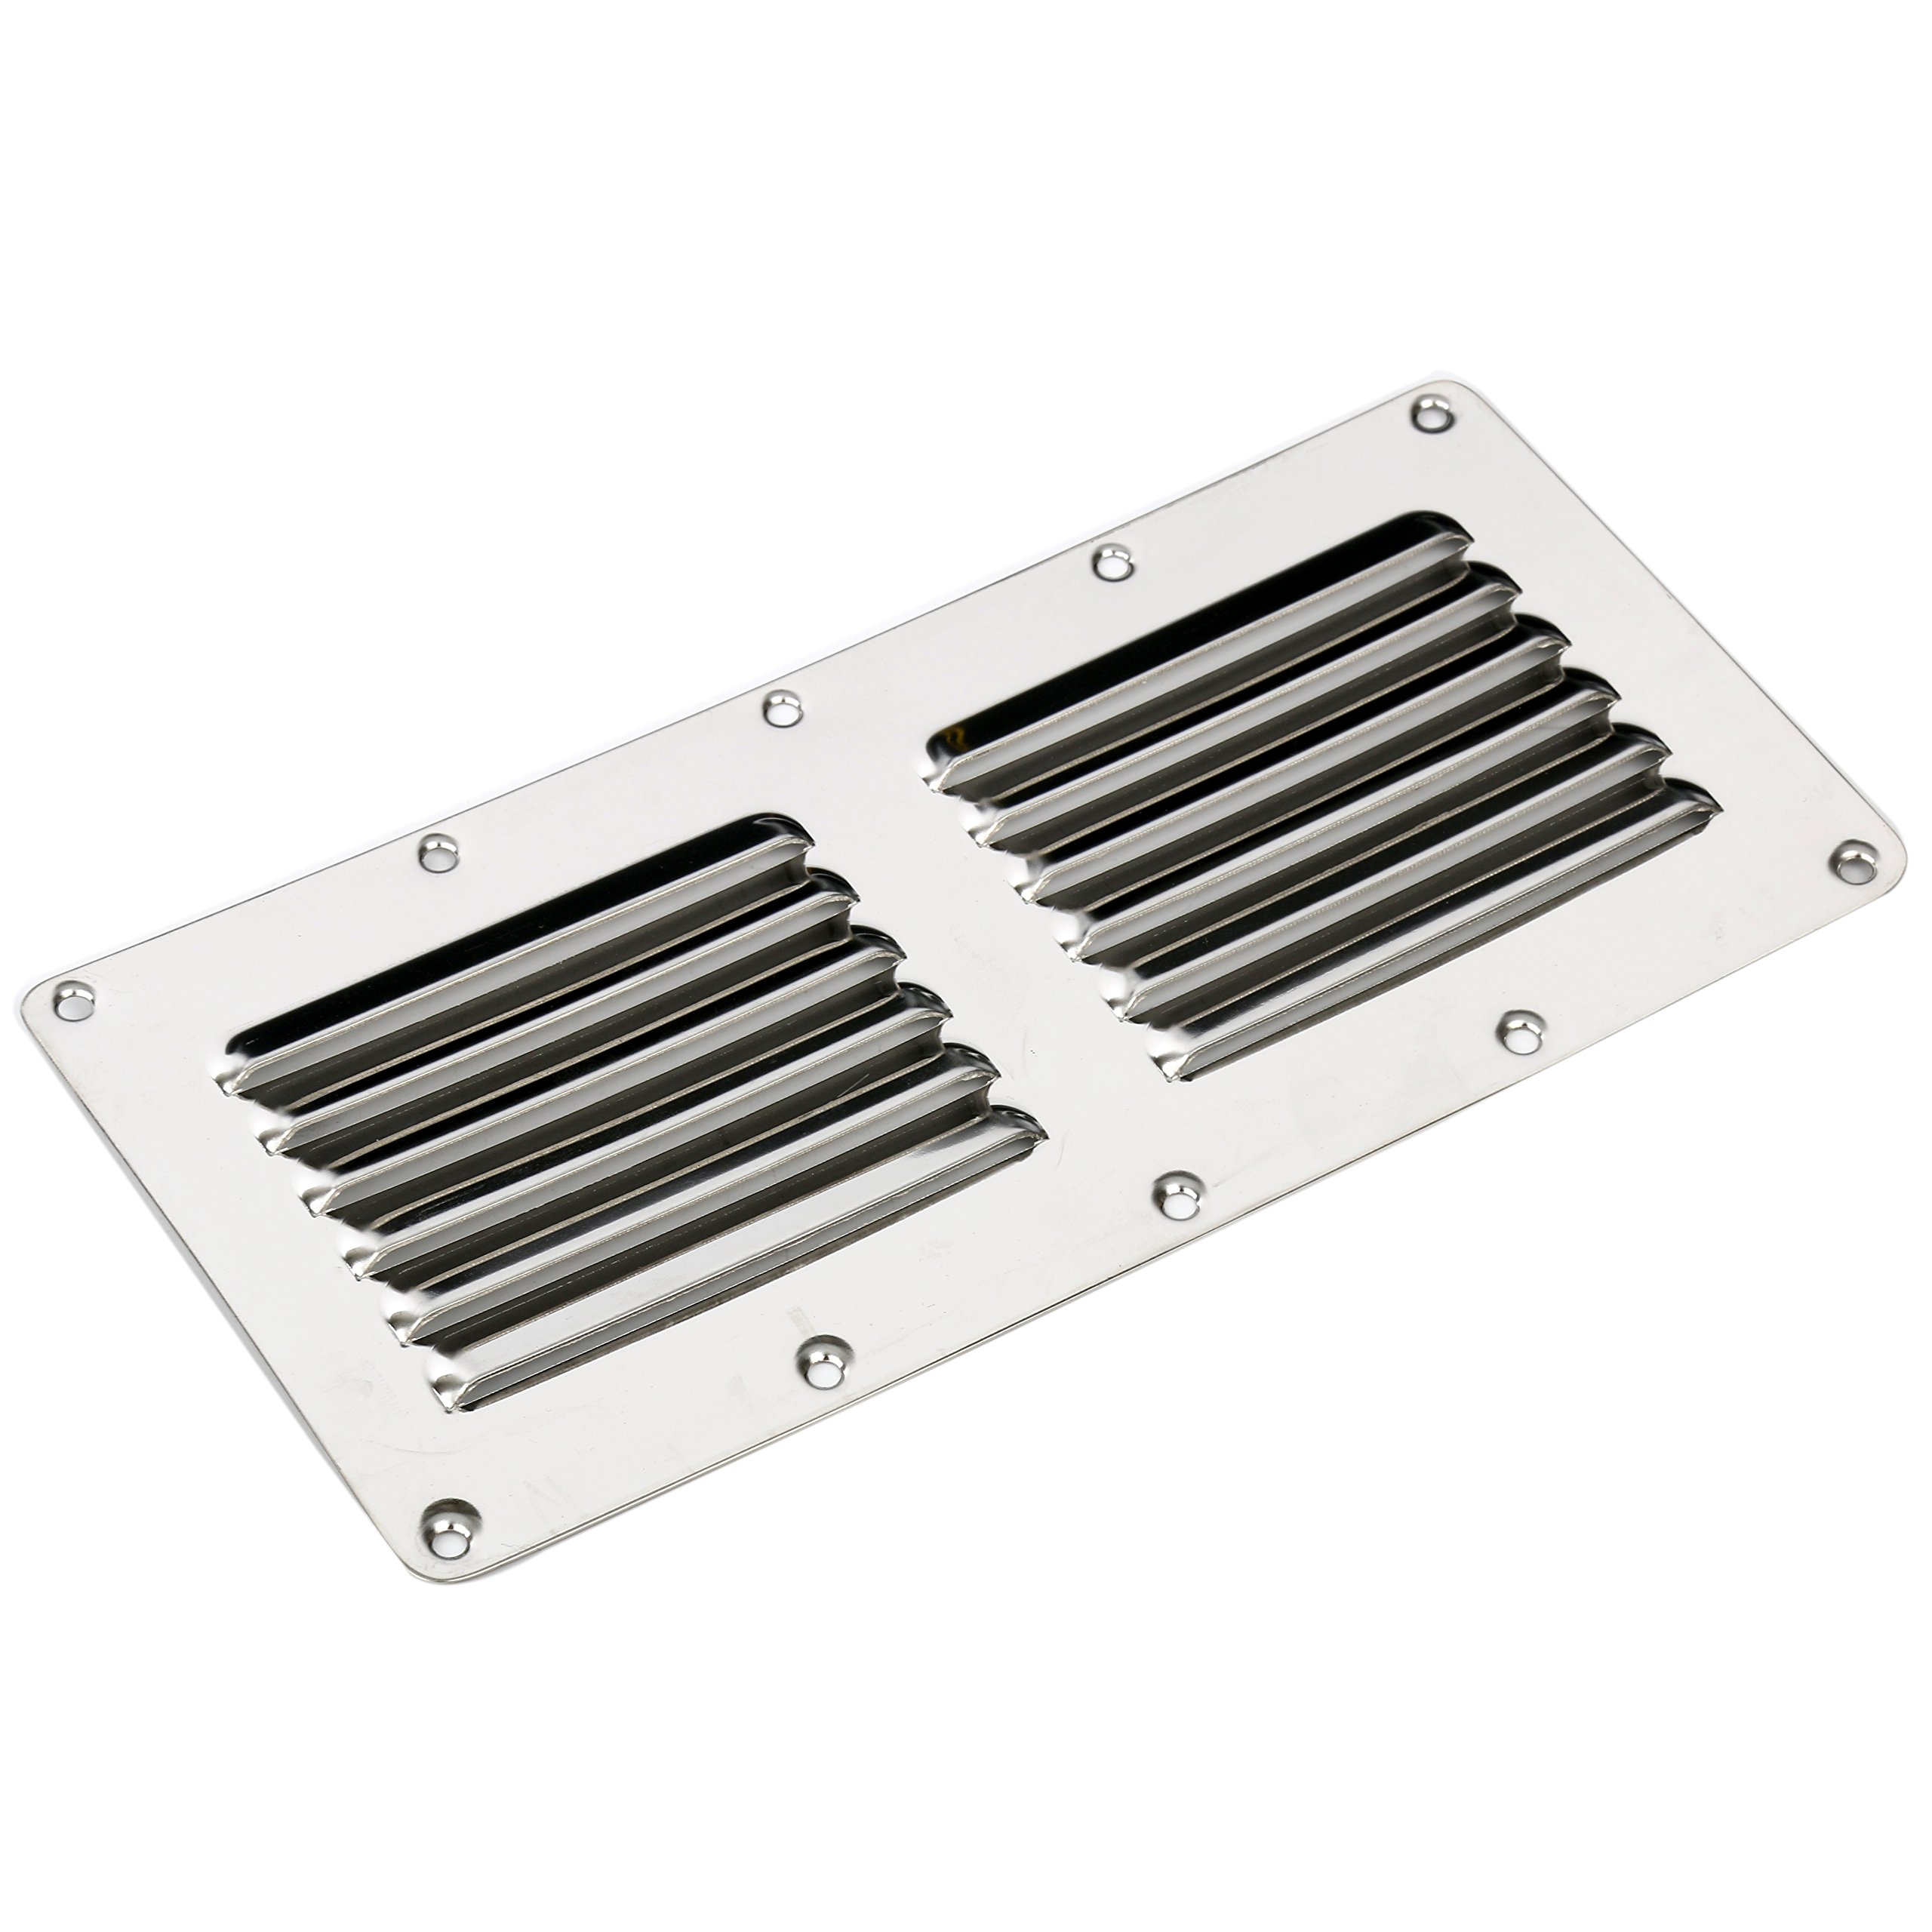 Amarine-made Stainless Steel Stamped Louvered Vent - Rectangular - 07723S - 4-1/2'' X 9'' by Amarine-made